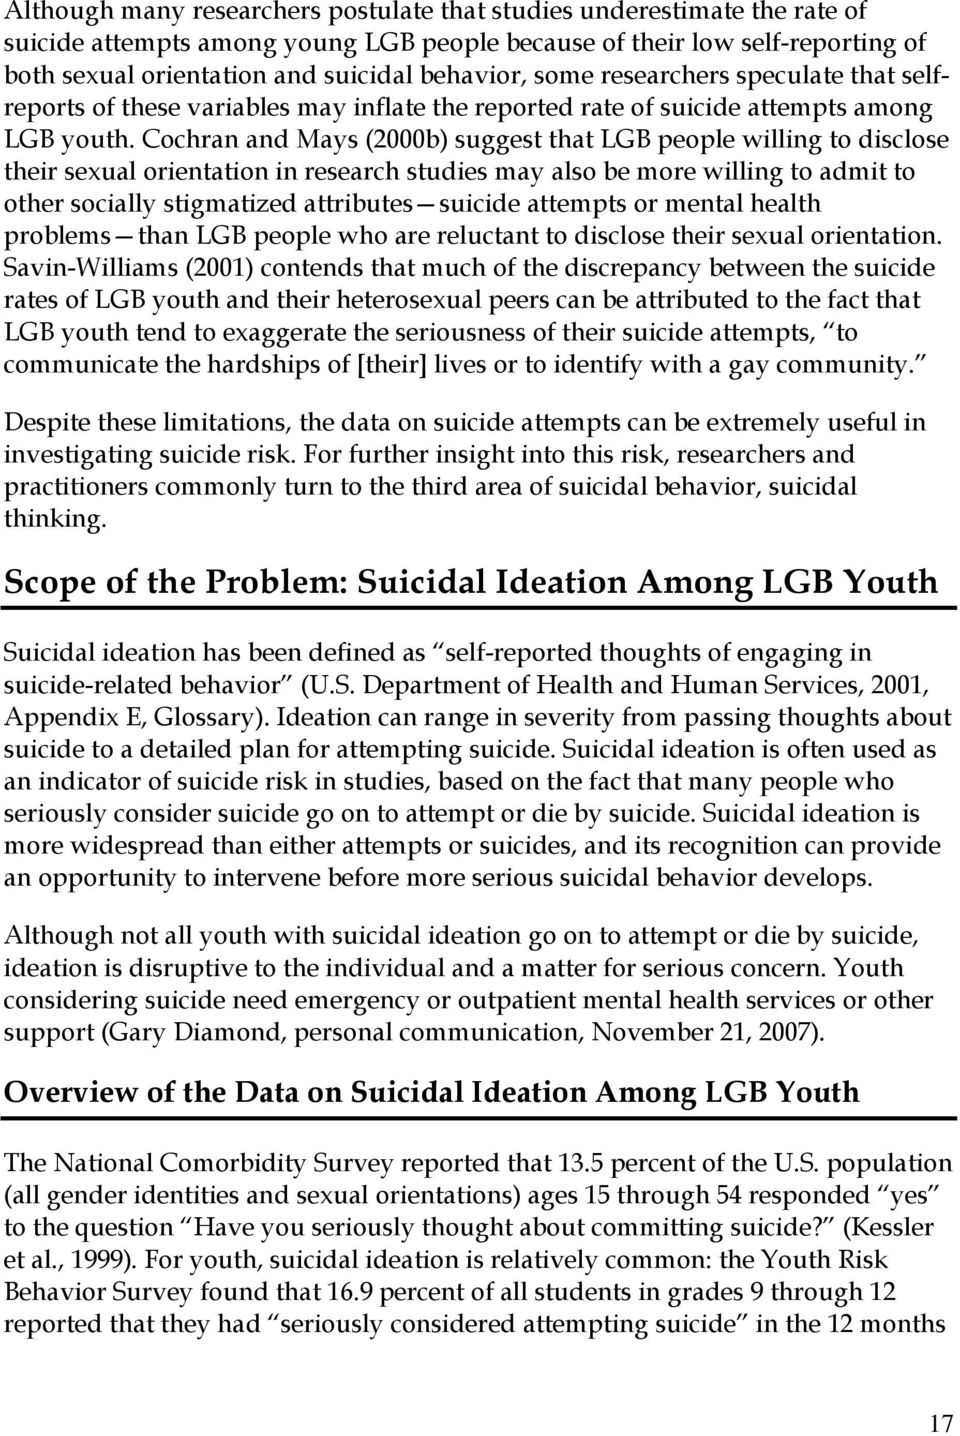 Cochran and Mays (2000b) suggest that LGB people willing to disclose their sexual orientation in research studies may also be more willing to admit to other socially stigmatized attributes suicide